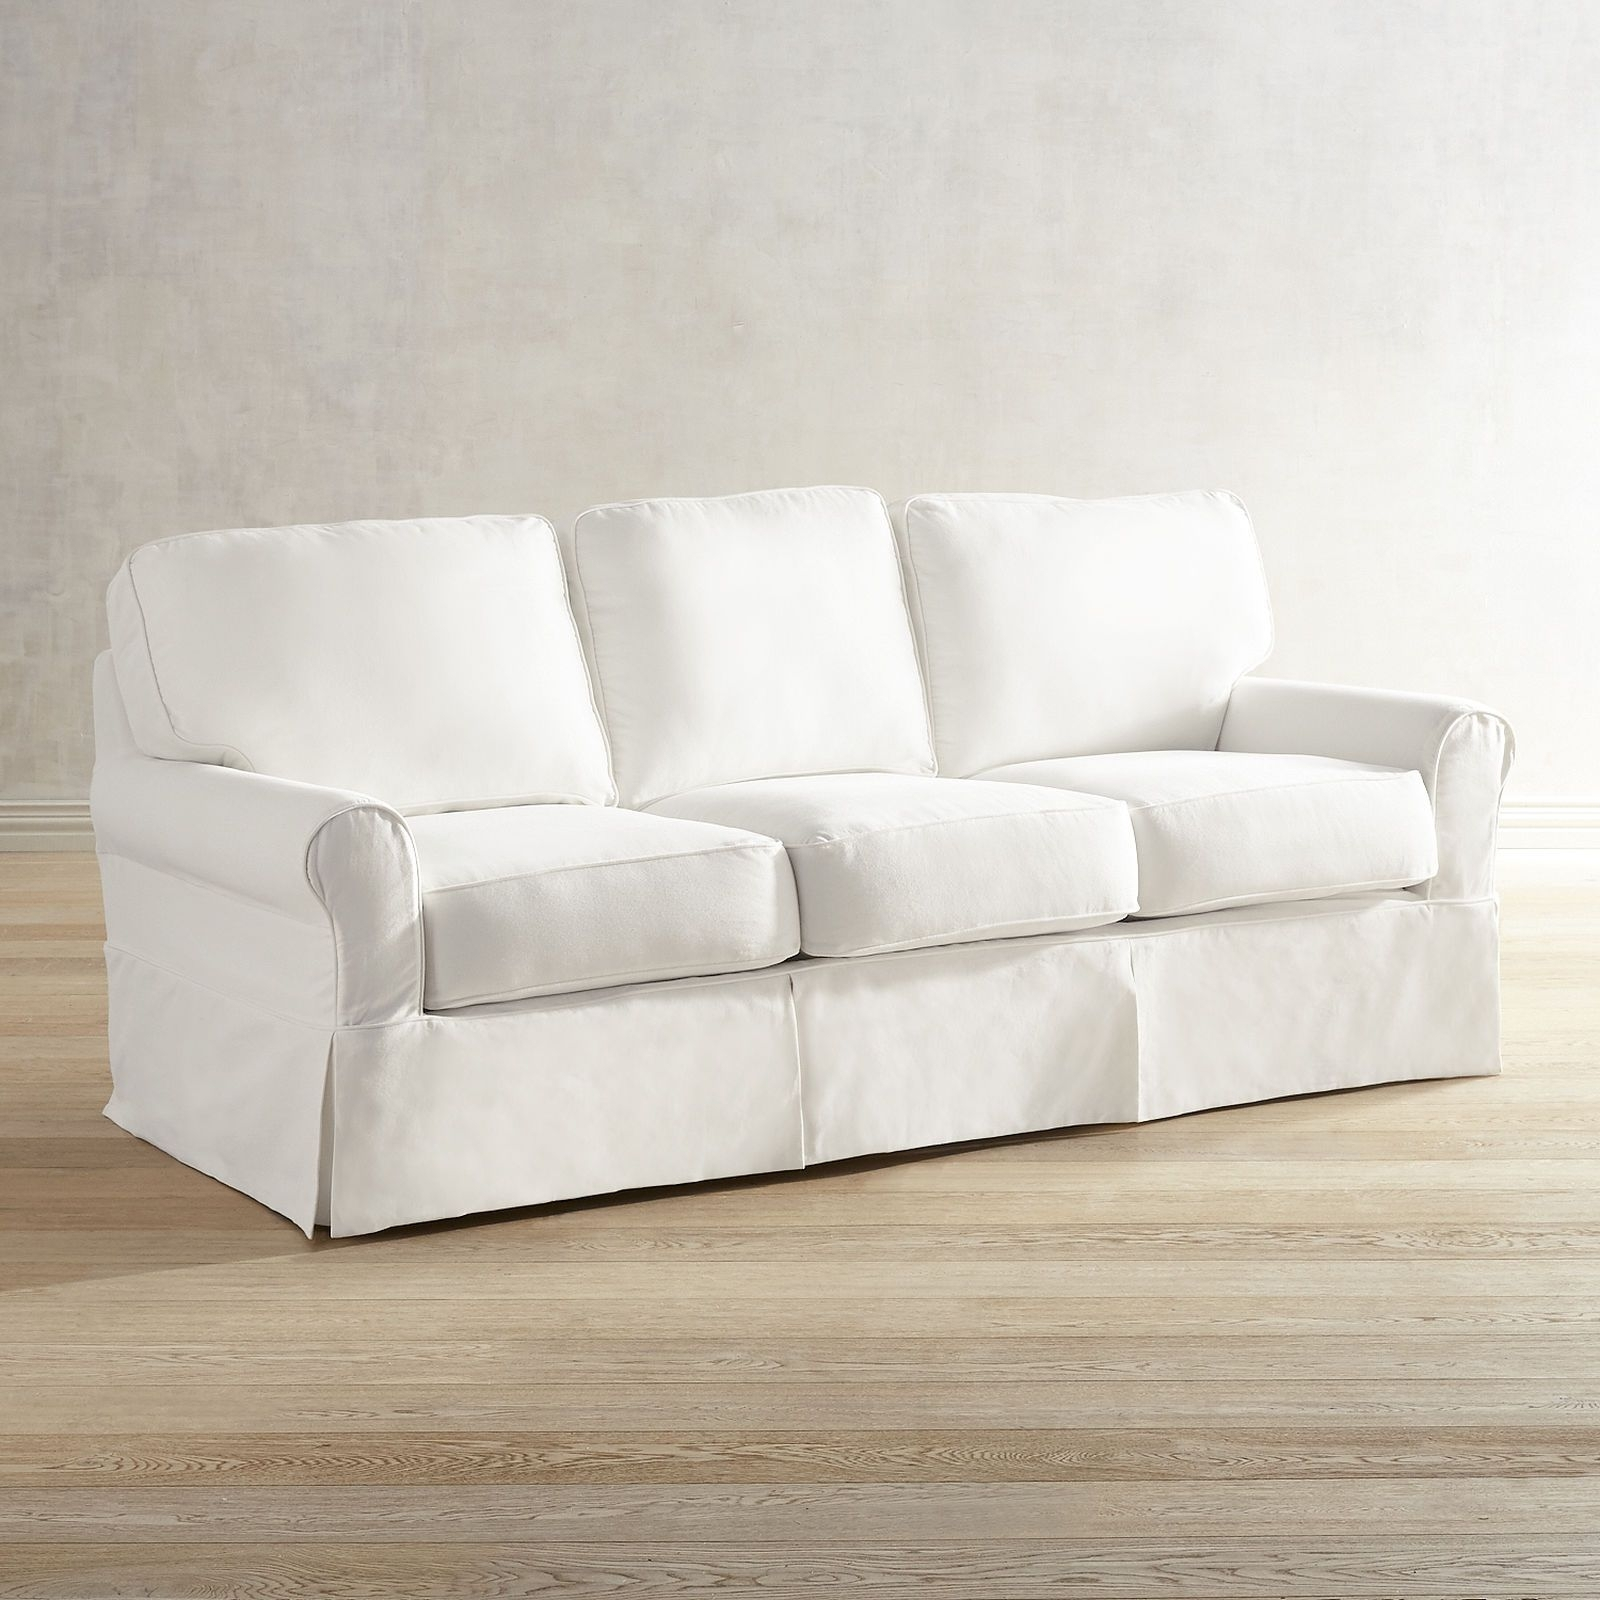 Lia Pierformance™ White Slipcovered Sofa | F U R N I T U R E Within London Optical Reversible Sofa Chaise Sectionals (View 13 of 25)